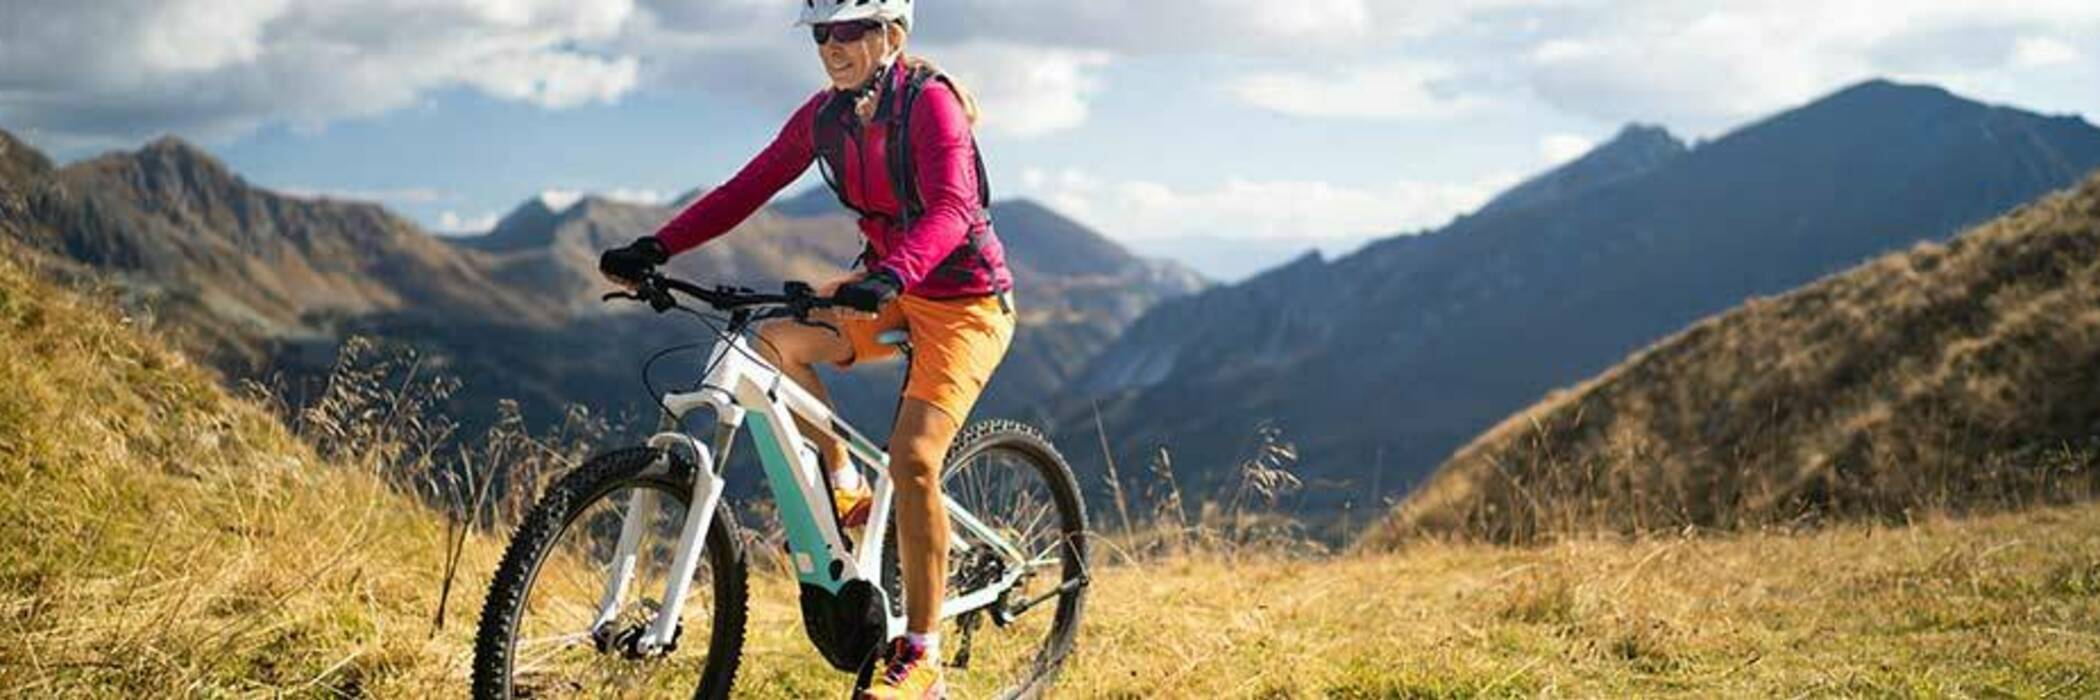 Woman on electric bike in the mountains.